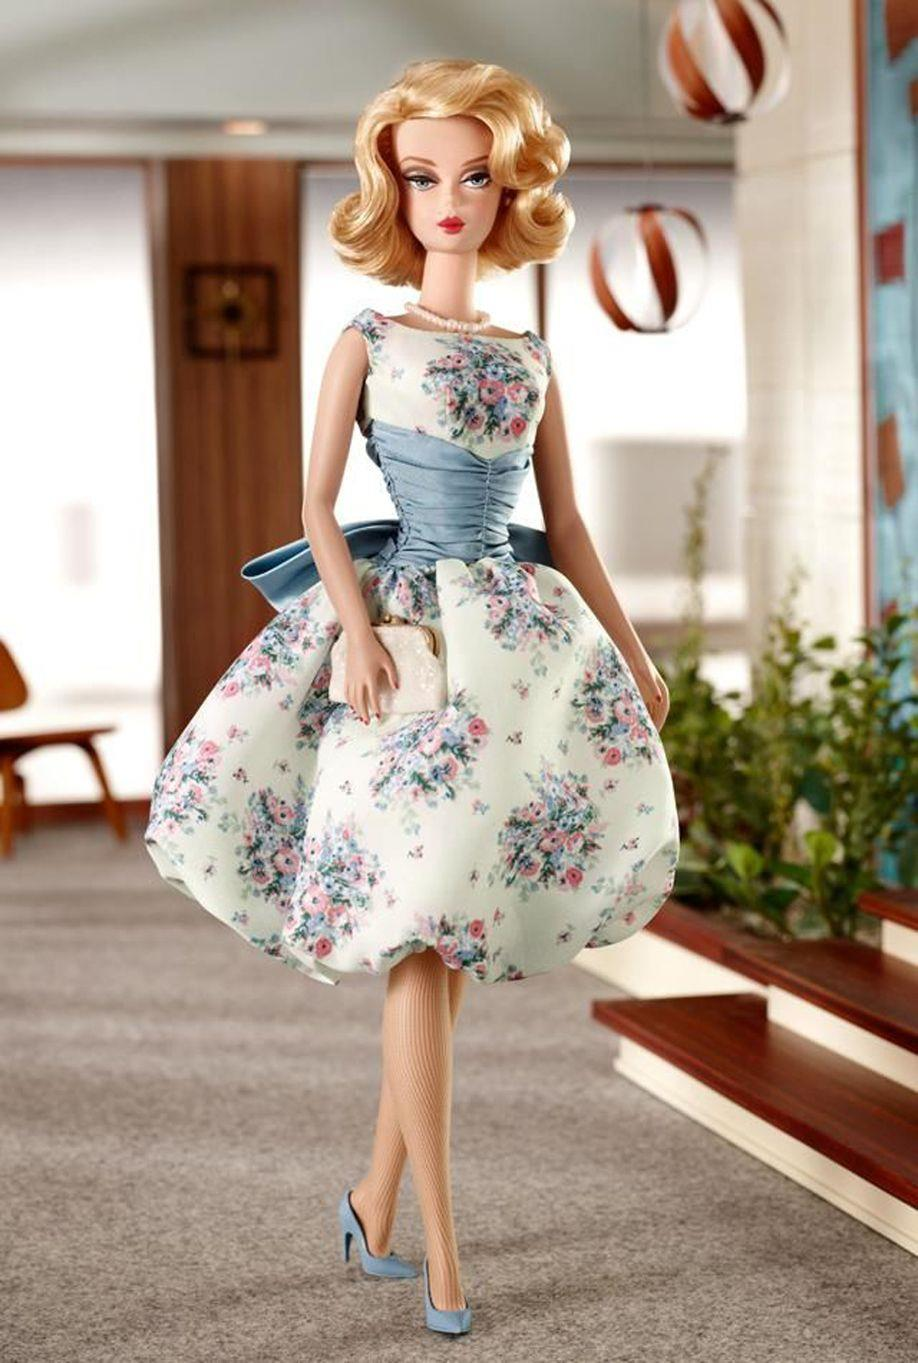 Dalani, Barbie, New York, Hollywood, Moda, Style